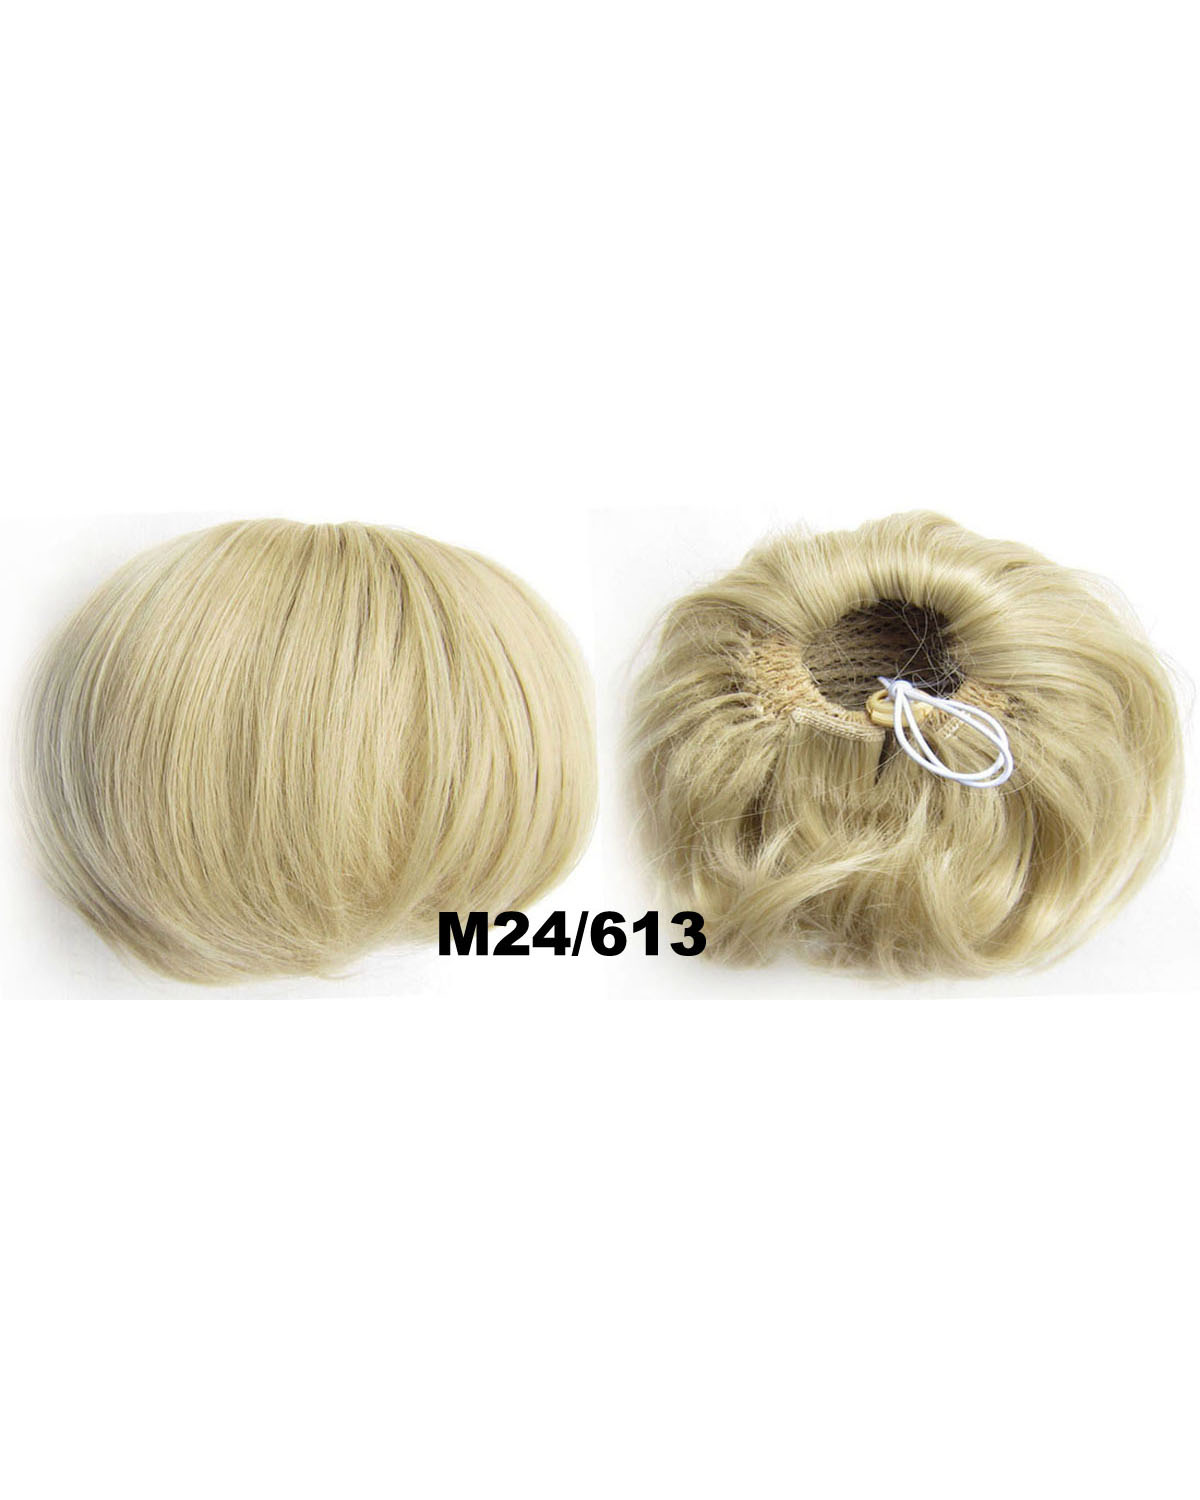 Ladies Graceful Straight Short Hair Buns Drawstring Synthetic Hair Extension Bride Scrunchies M24/613